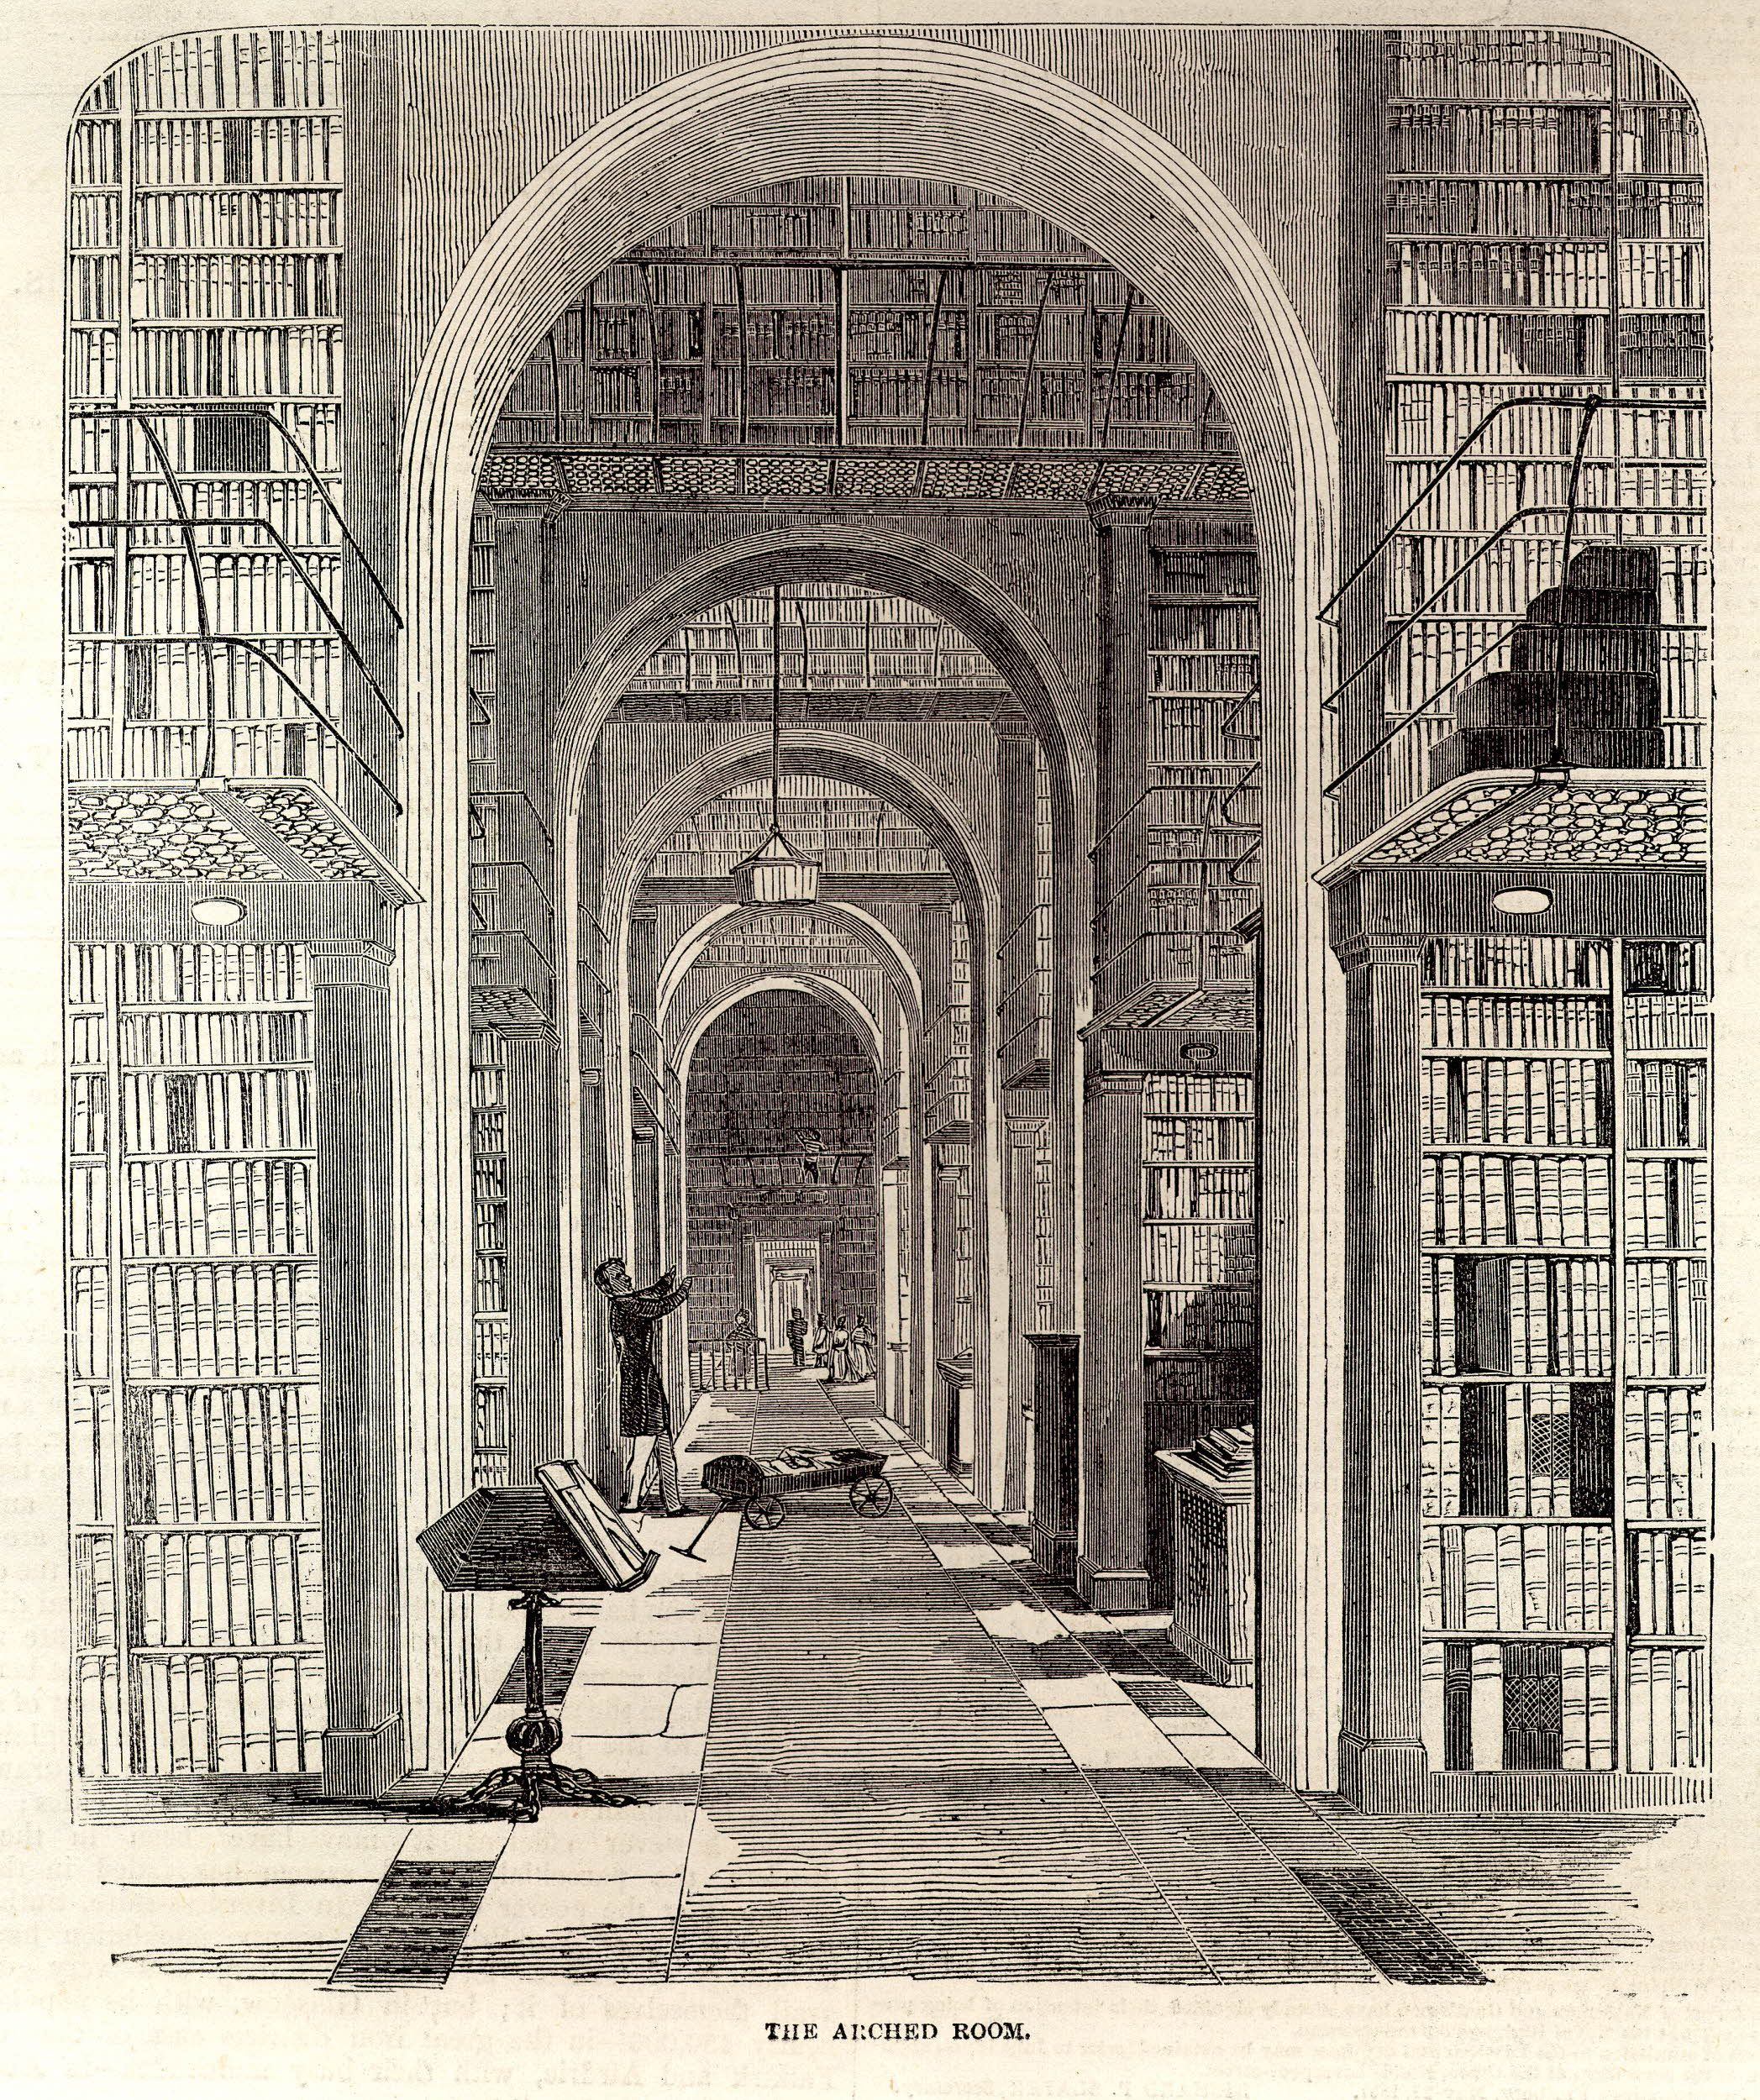 Unknown artist, The Arch Room, 1851, wood engraving, 41 x 28 cm, published in The Illustrated London News, vol.18, 7 June, 1851 (London: Illustrated London News & Sketch Ltd., 1842-) British Museum, EPH-ME.704